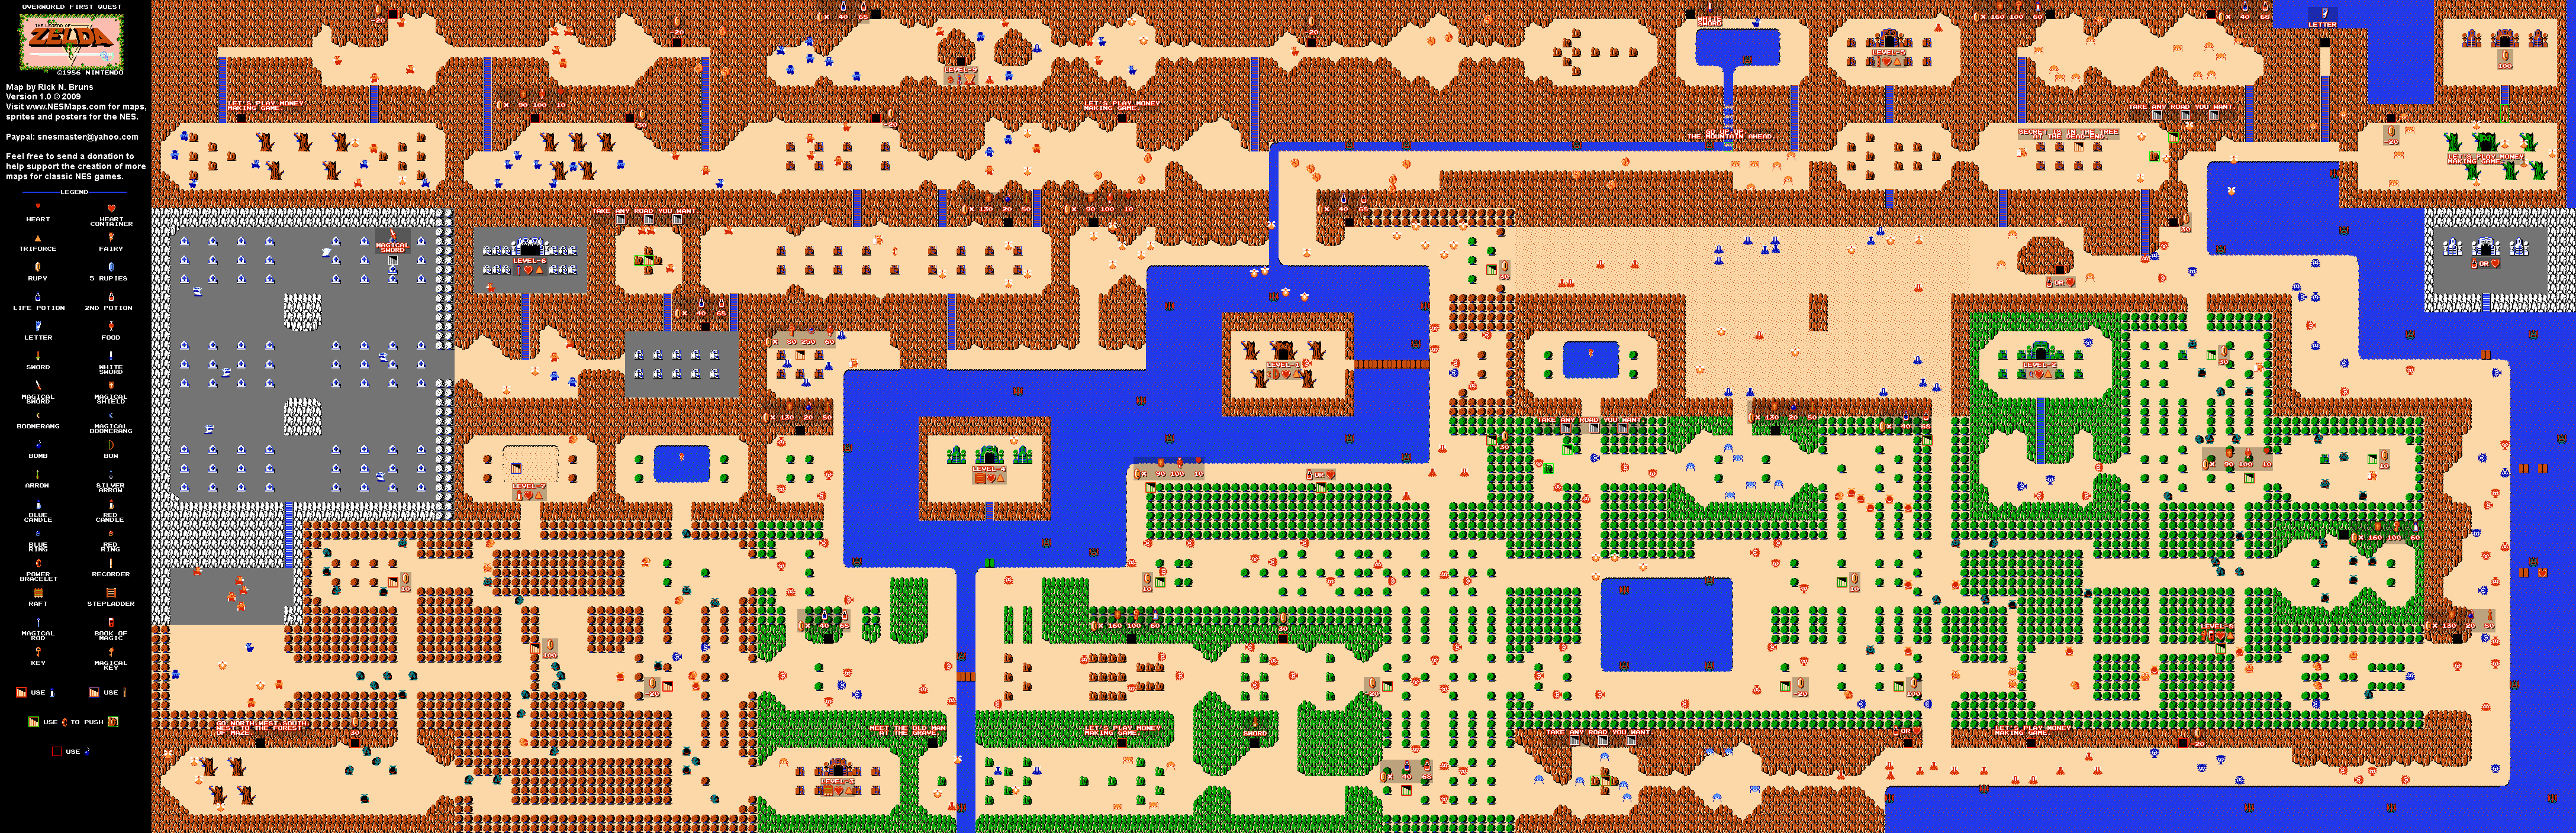 Legend Of Zelda World Map The Legend of Zelda   Overworld Quest 1 Map